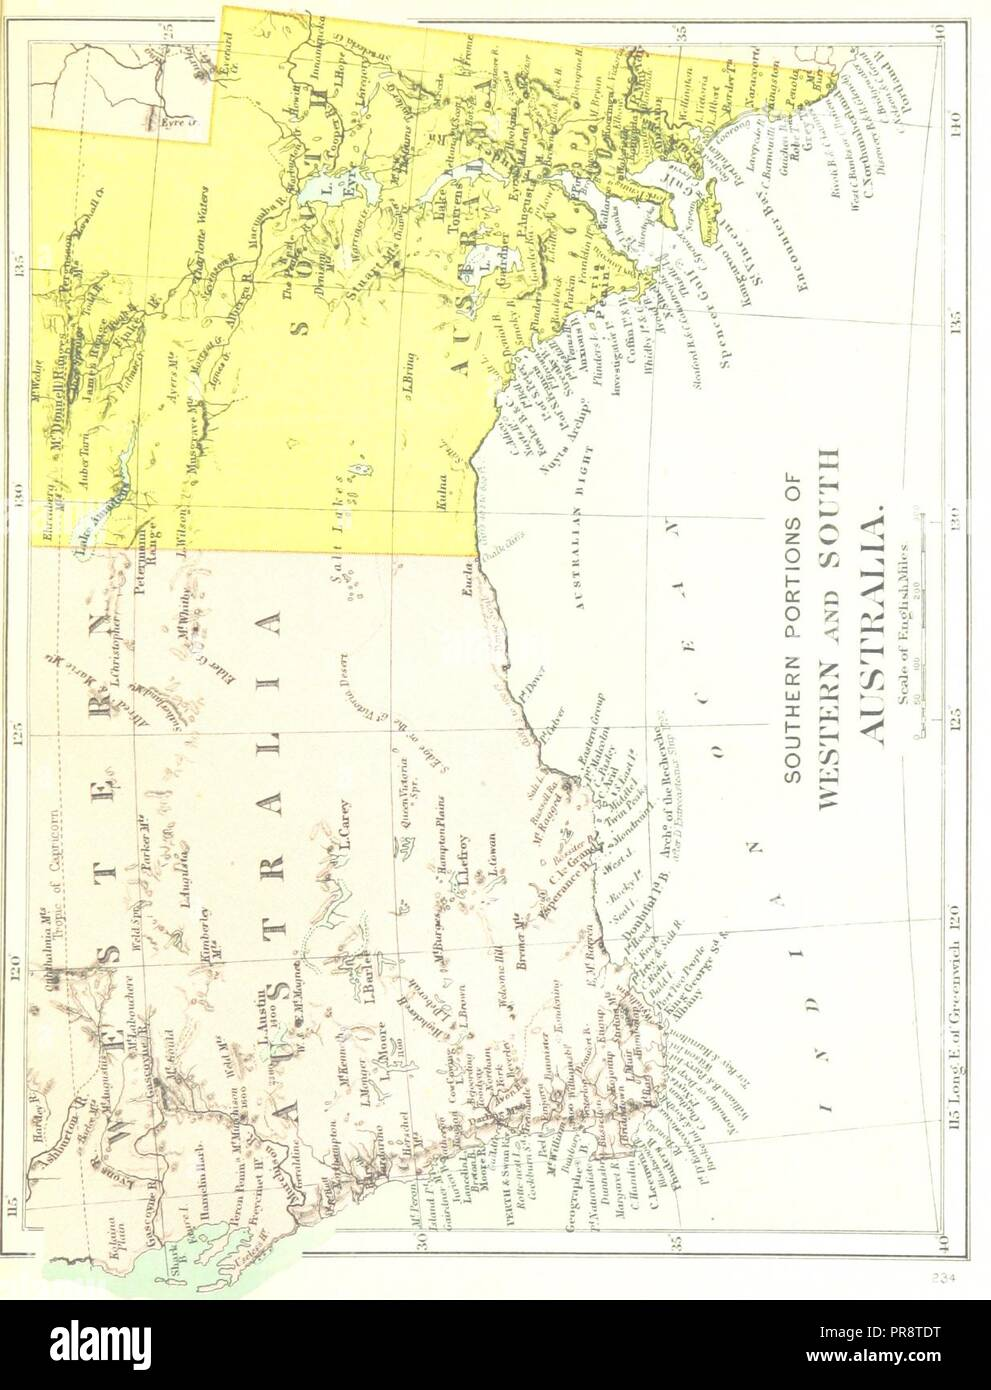 Map From England To Australia.Vintage Maps New England Stock Photos Vintage Maps New England